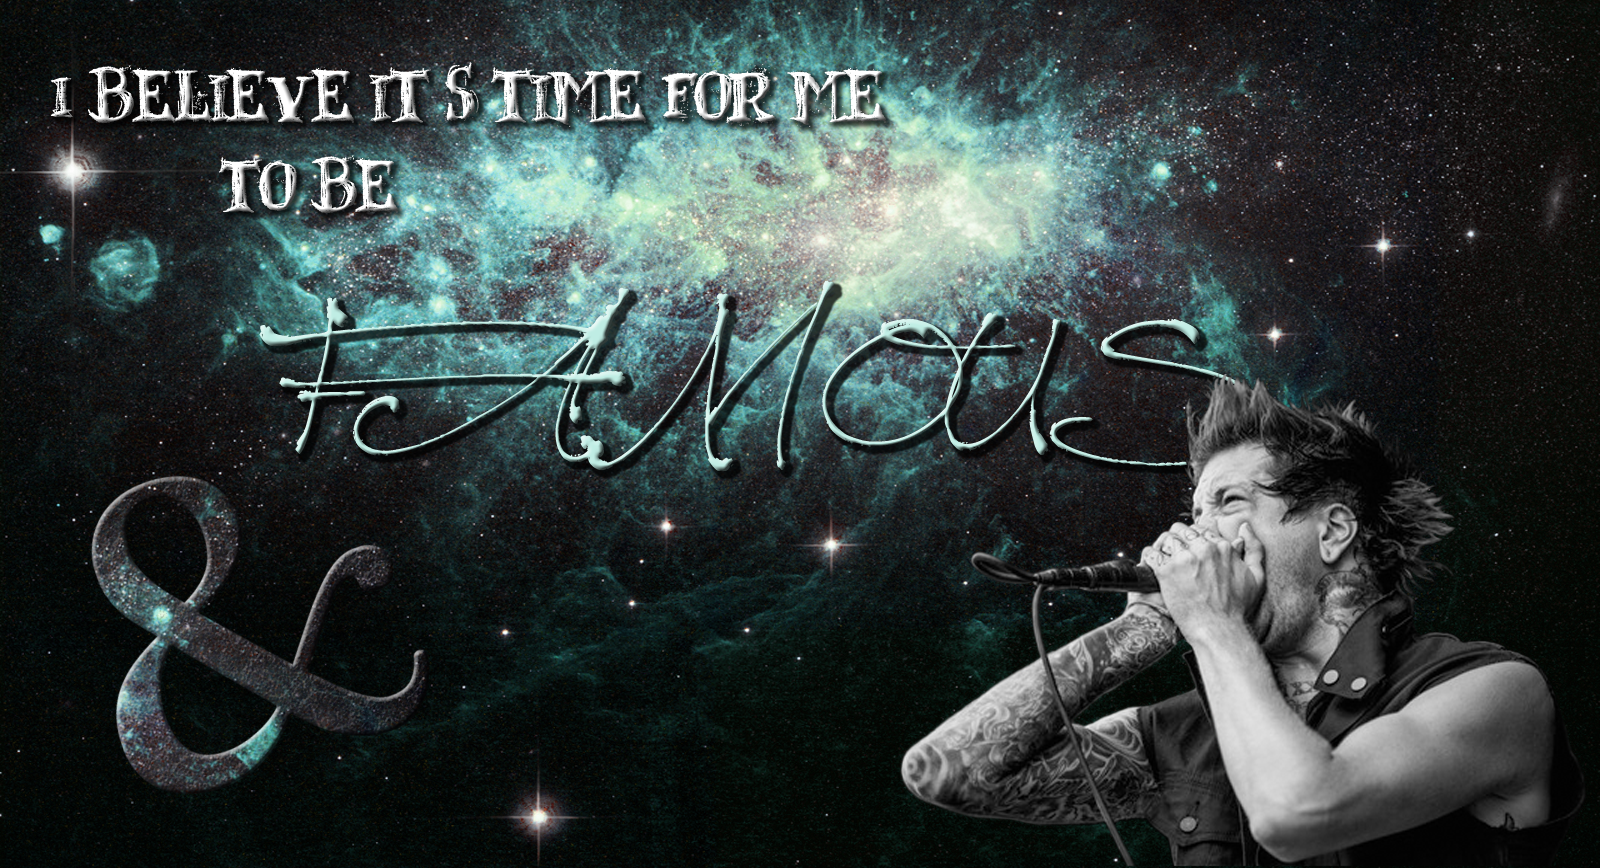 Austin carlile wallpaper by avrilfan12341 on deviantart - Austin carlile wallpaper ...